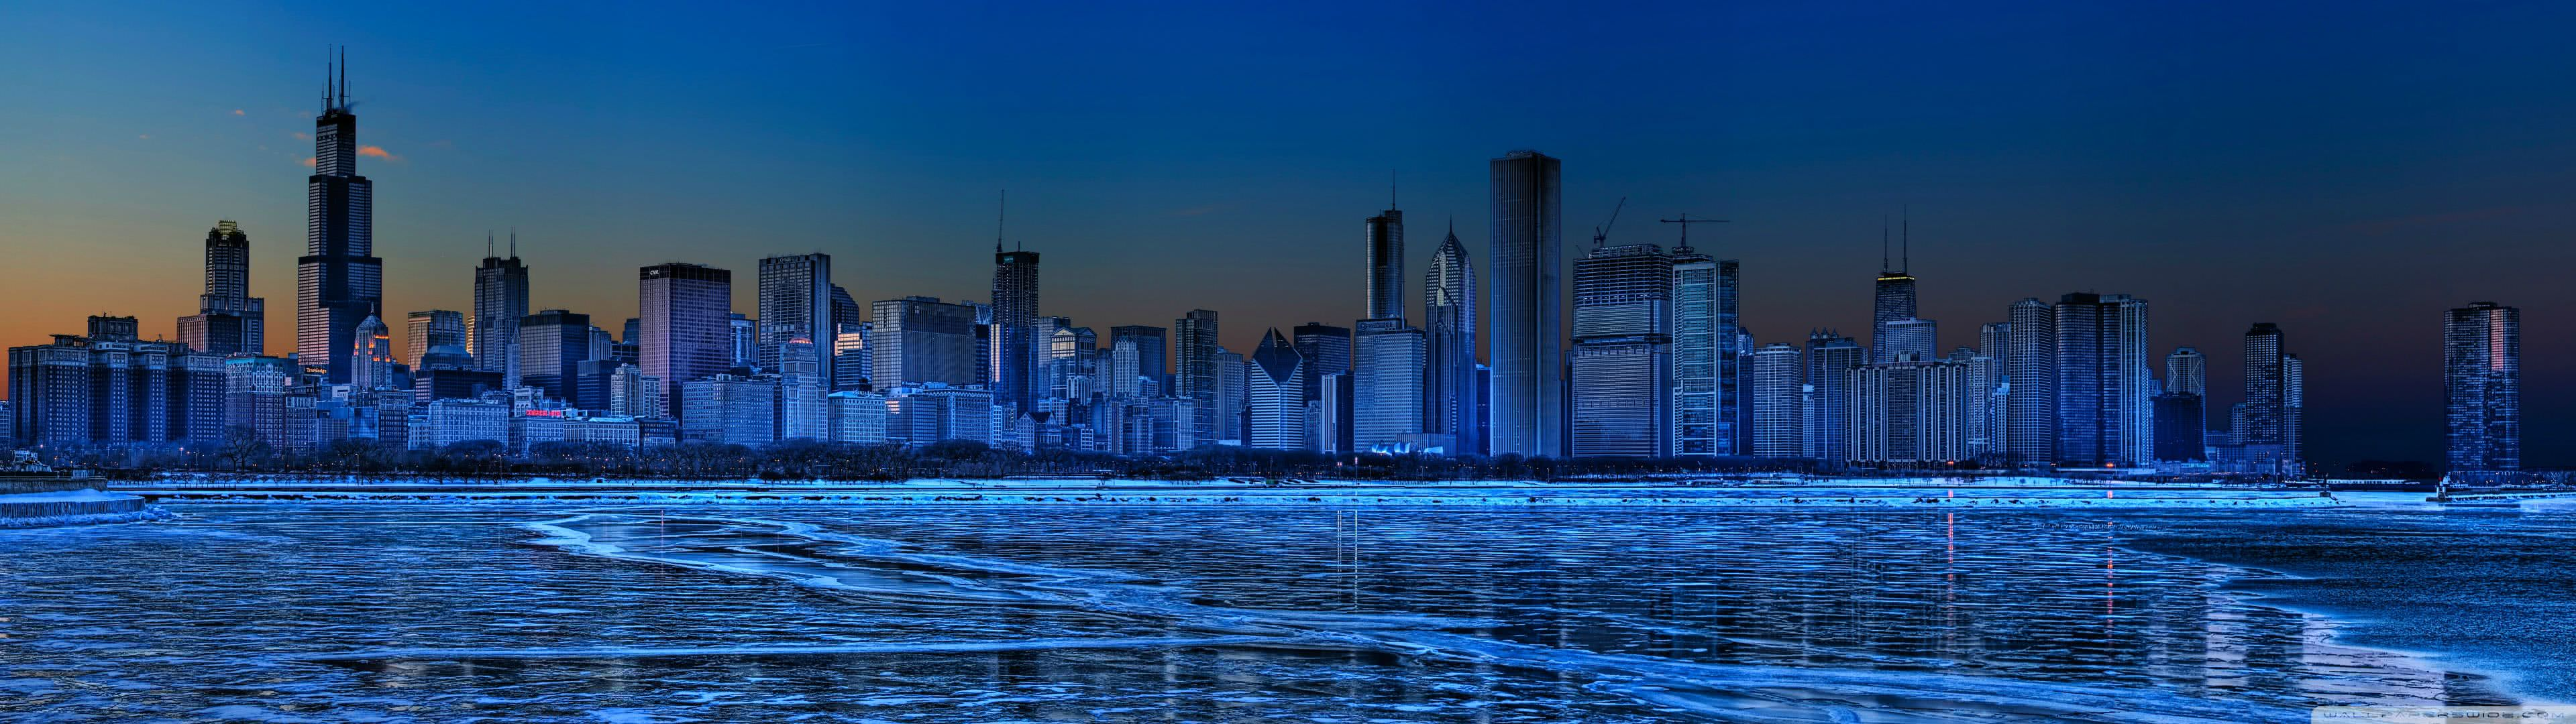 chicago skyline dual monitor wallpaper